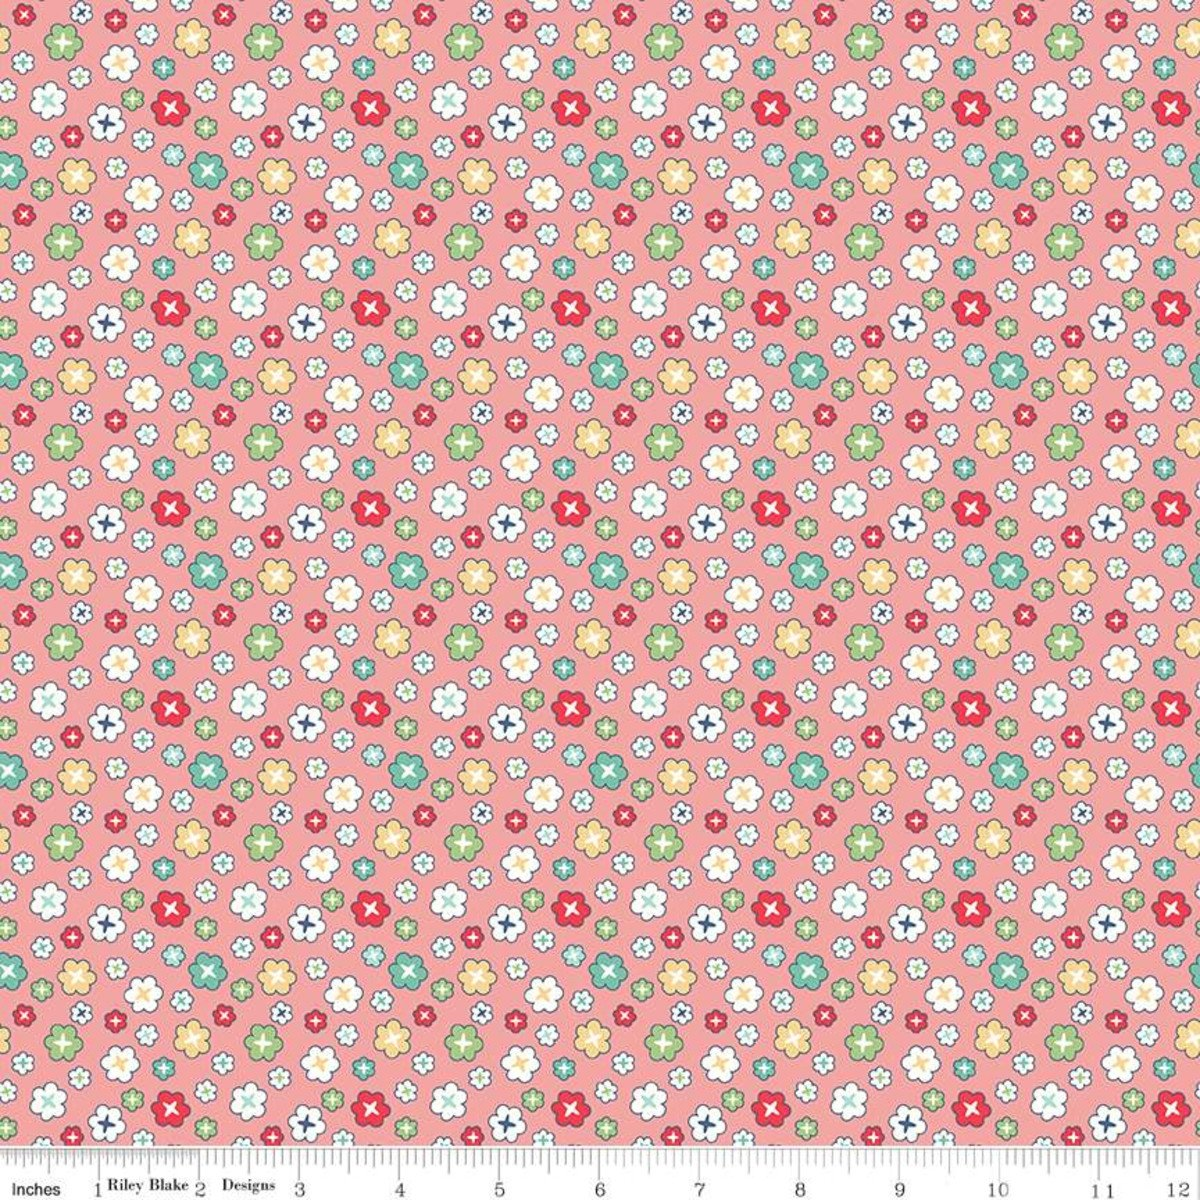 107/108 Vintage Happy 2 Blossom Wide Quilt Backing by Lori Hold of Bee in My Bonnet for Riley Blake Designs - Coral